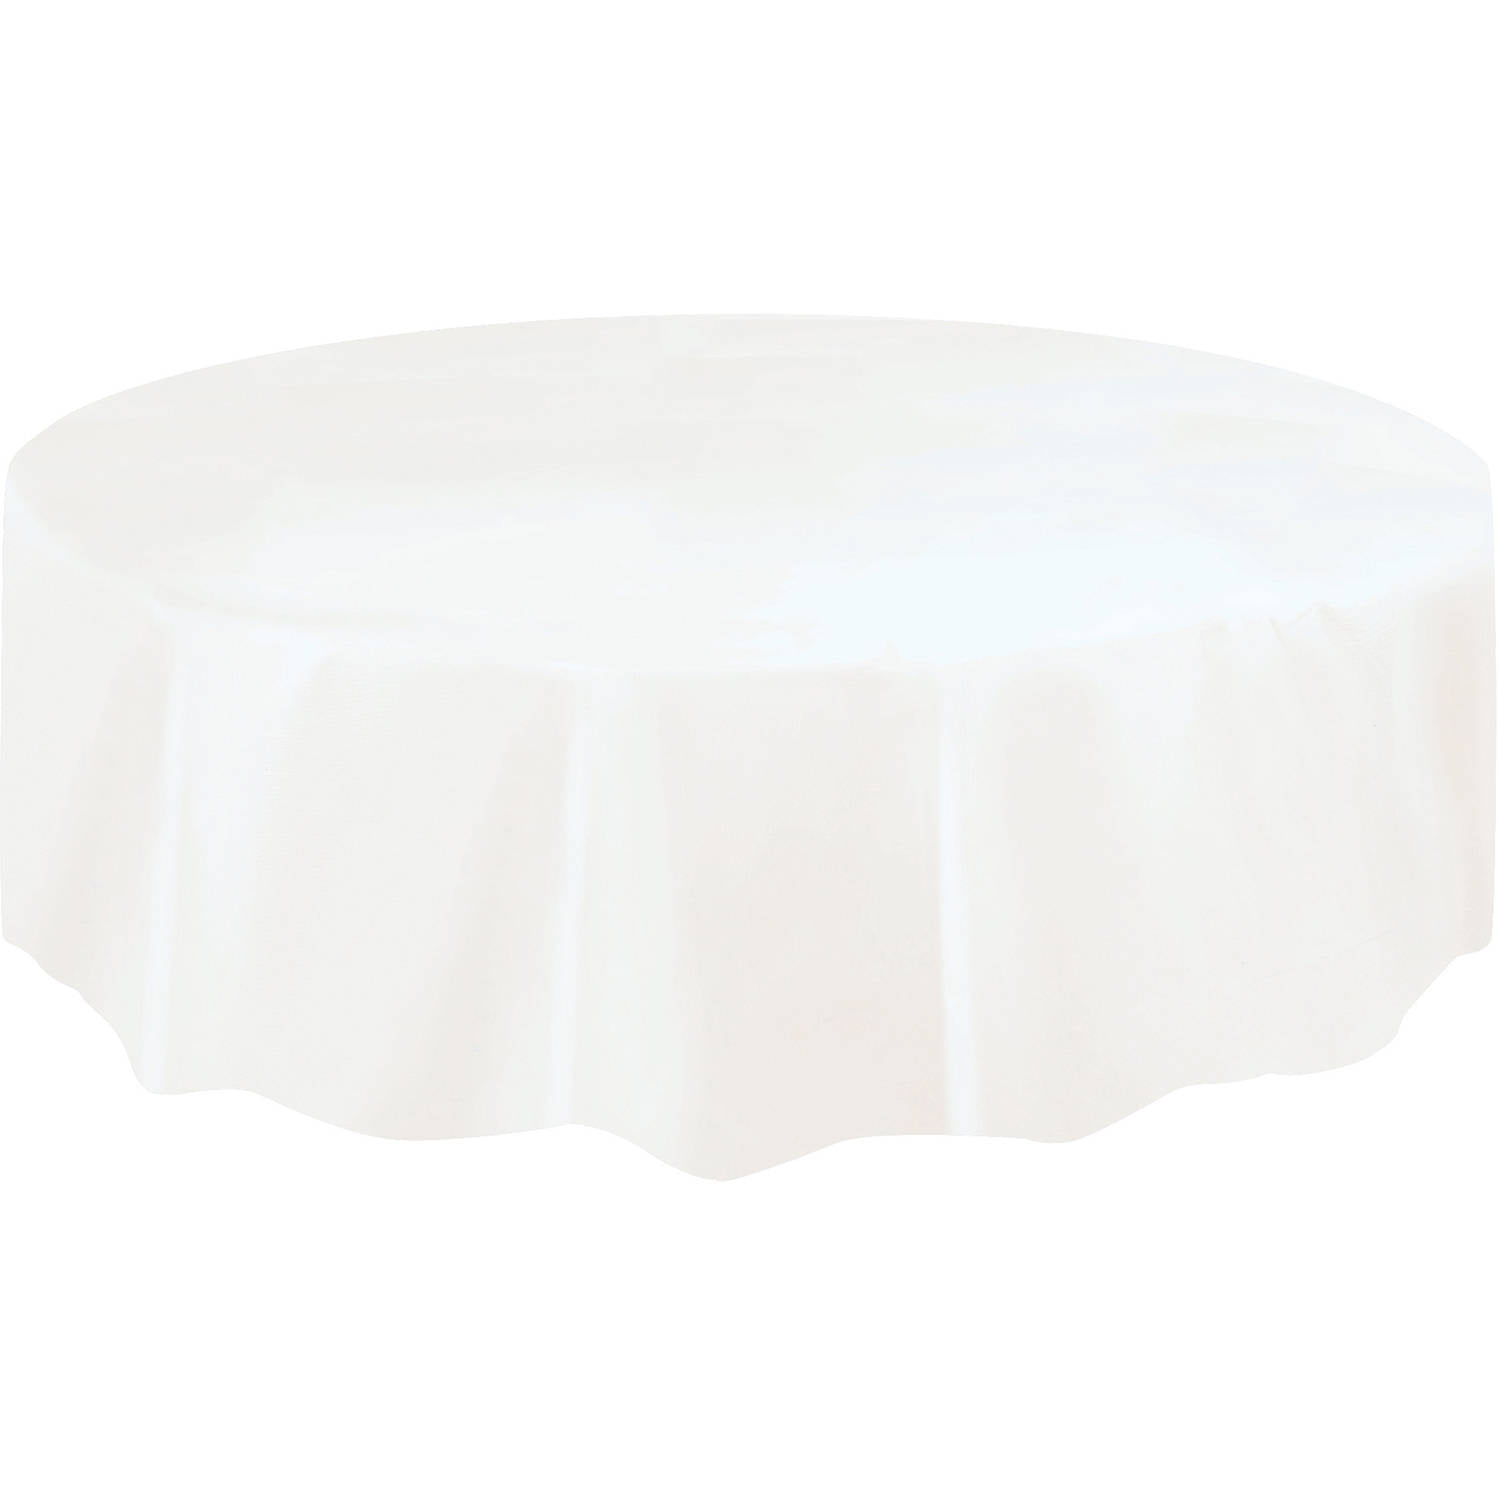 Attrayant Plastic Round Tablecloth, 84 In, White, 1ct   Walmart.com